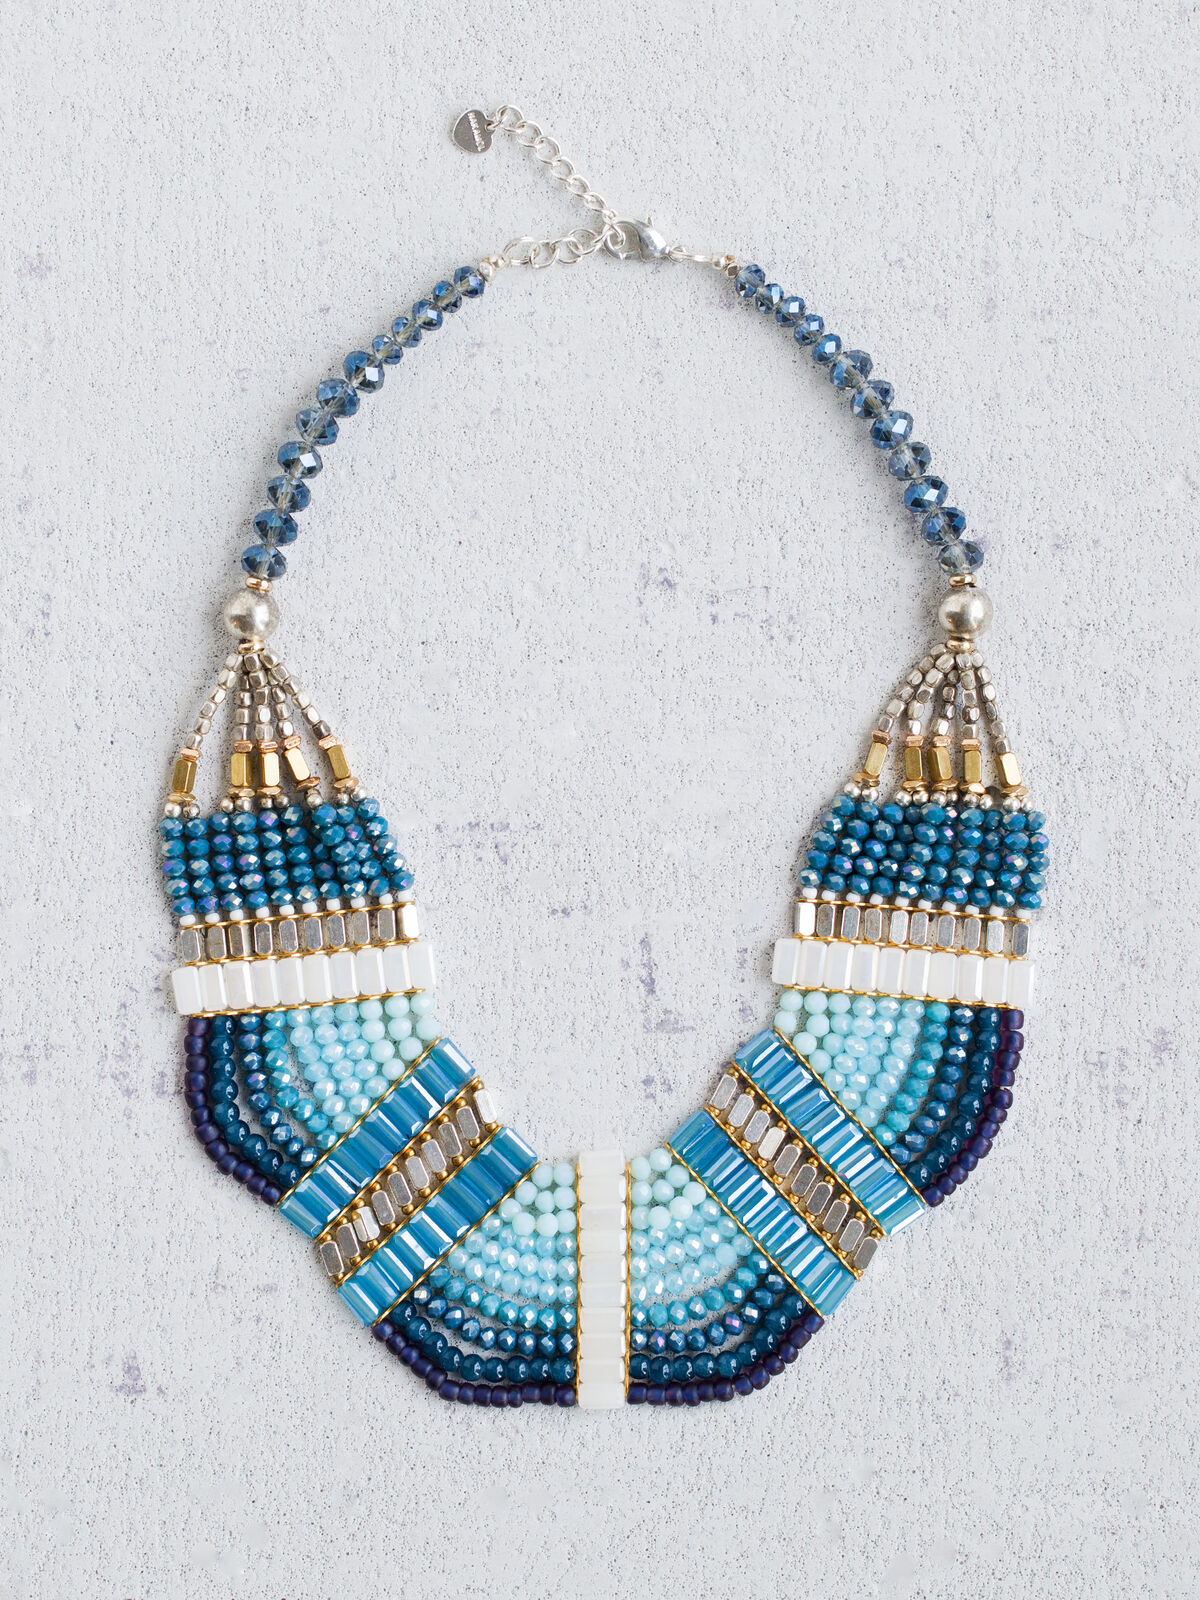 Nakamol - Blue Bead Statement Neckalce